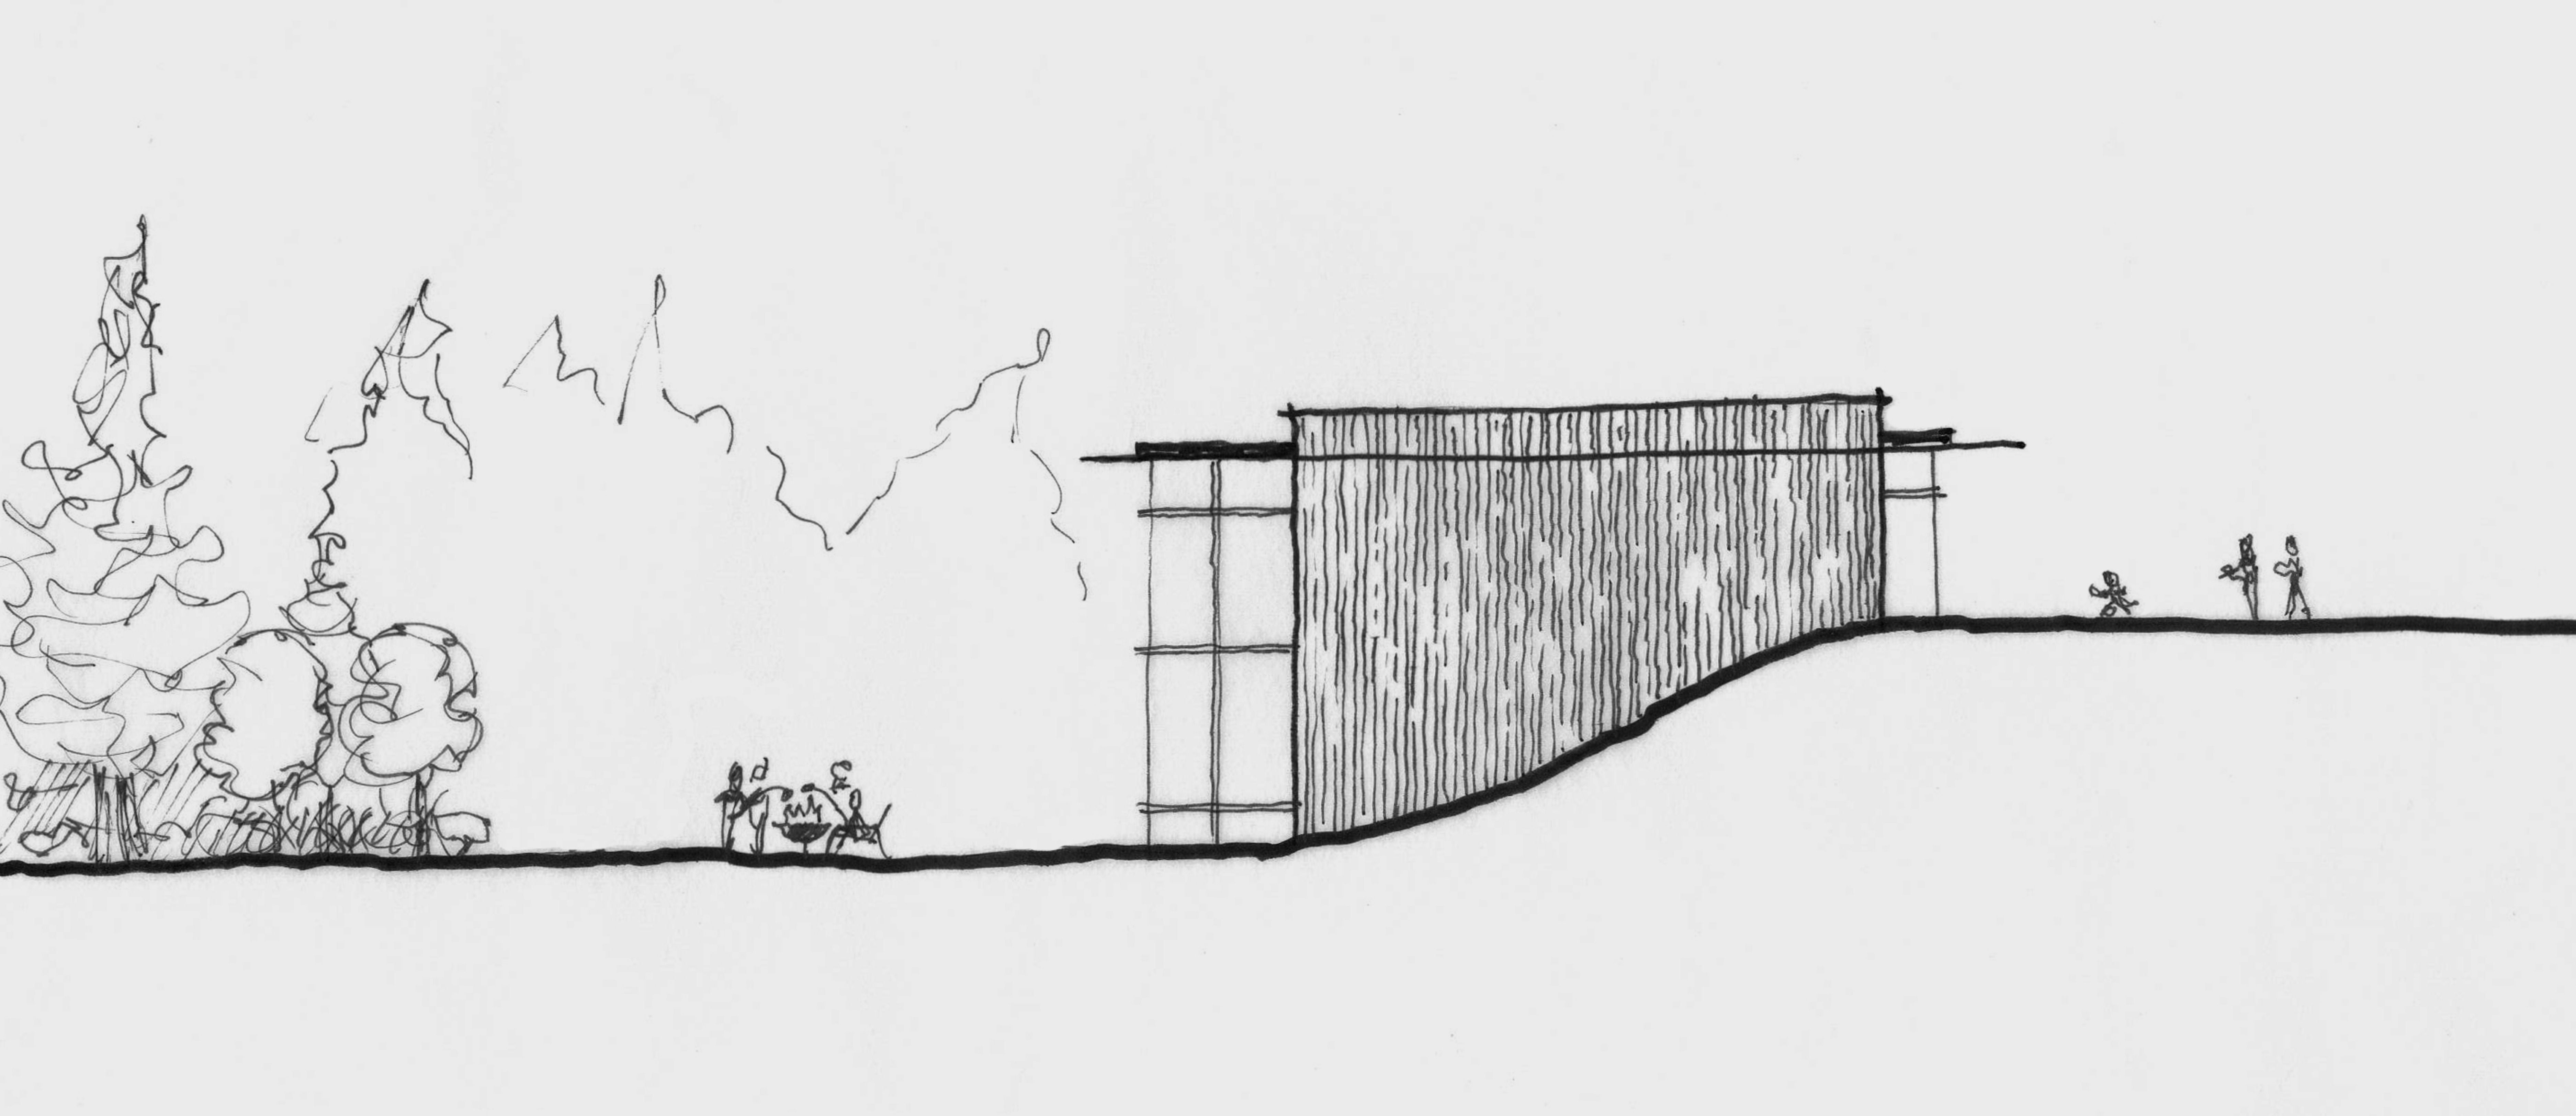 An elevation idea sketch for a #moderncabin #seattlearchitecture #modernarchitecture #customhome #moderndesign #modernhomedecor #pnw #home #modernhomedecor #cedarsiding #woodsiding  #floortoceilingwindows #modernarchitect #seattlearchitect #moderninteriors #moderninteriordesign #floorplans #modernfloorplans #homefloorplans #archsketch #archdrawing #architecturesketch #conceptsketch